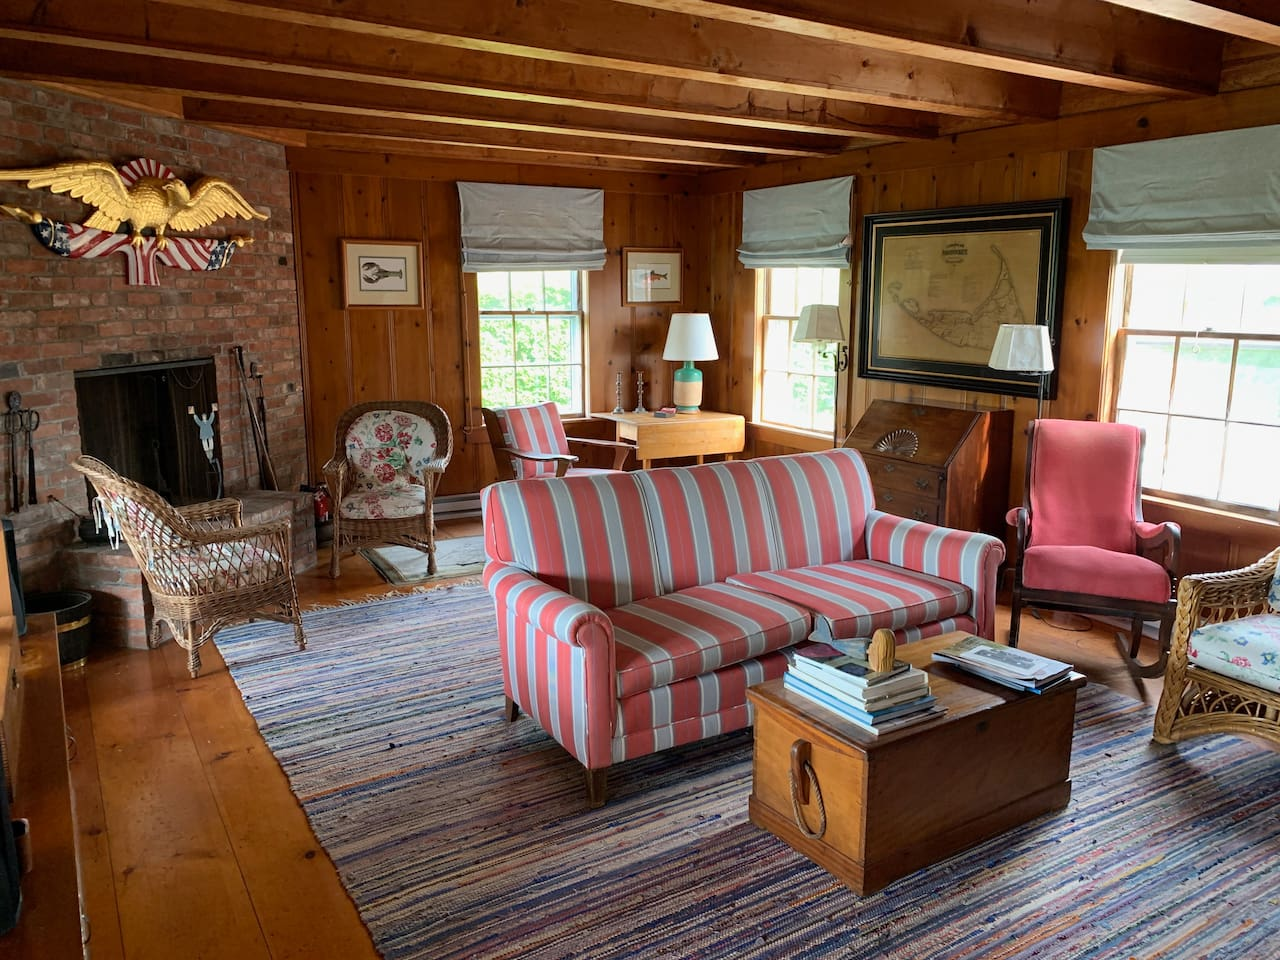 Carefully curated in the Authentic Nantucket style for you to relax with your friends and family. Living Room with fireplace, table for games, and a new, (huge) frame TV with Sonos.